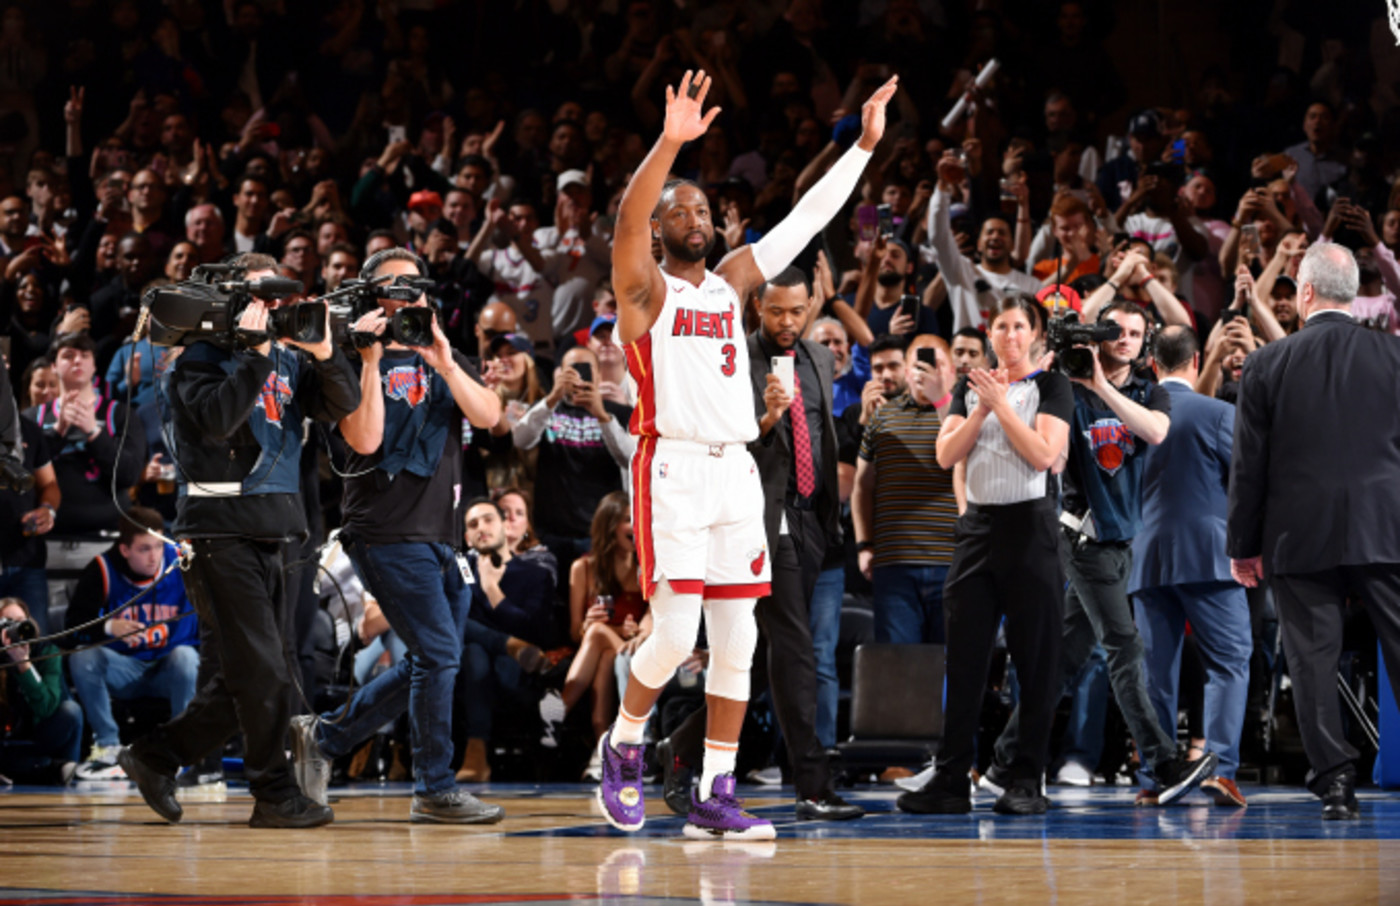 Dwyane Wade #3 of the Miami Heat gestures to the crowd